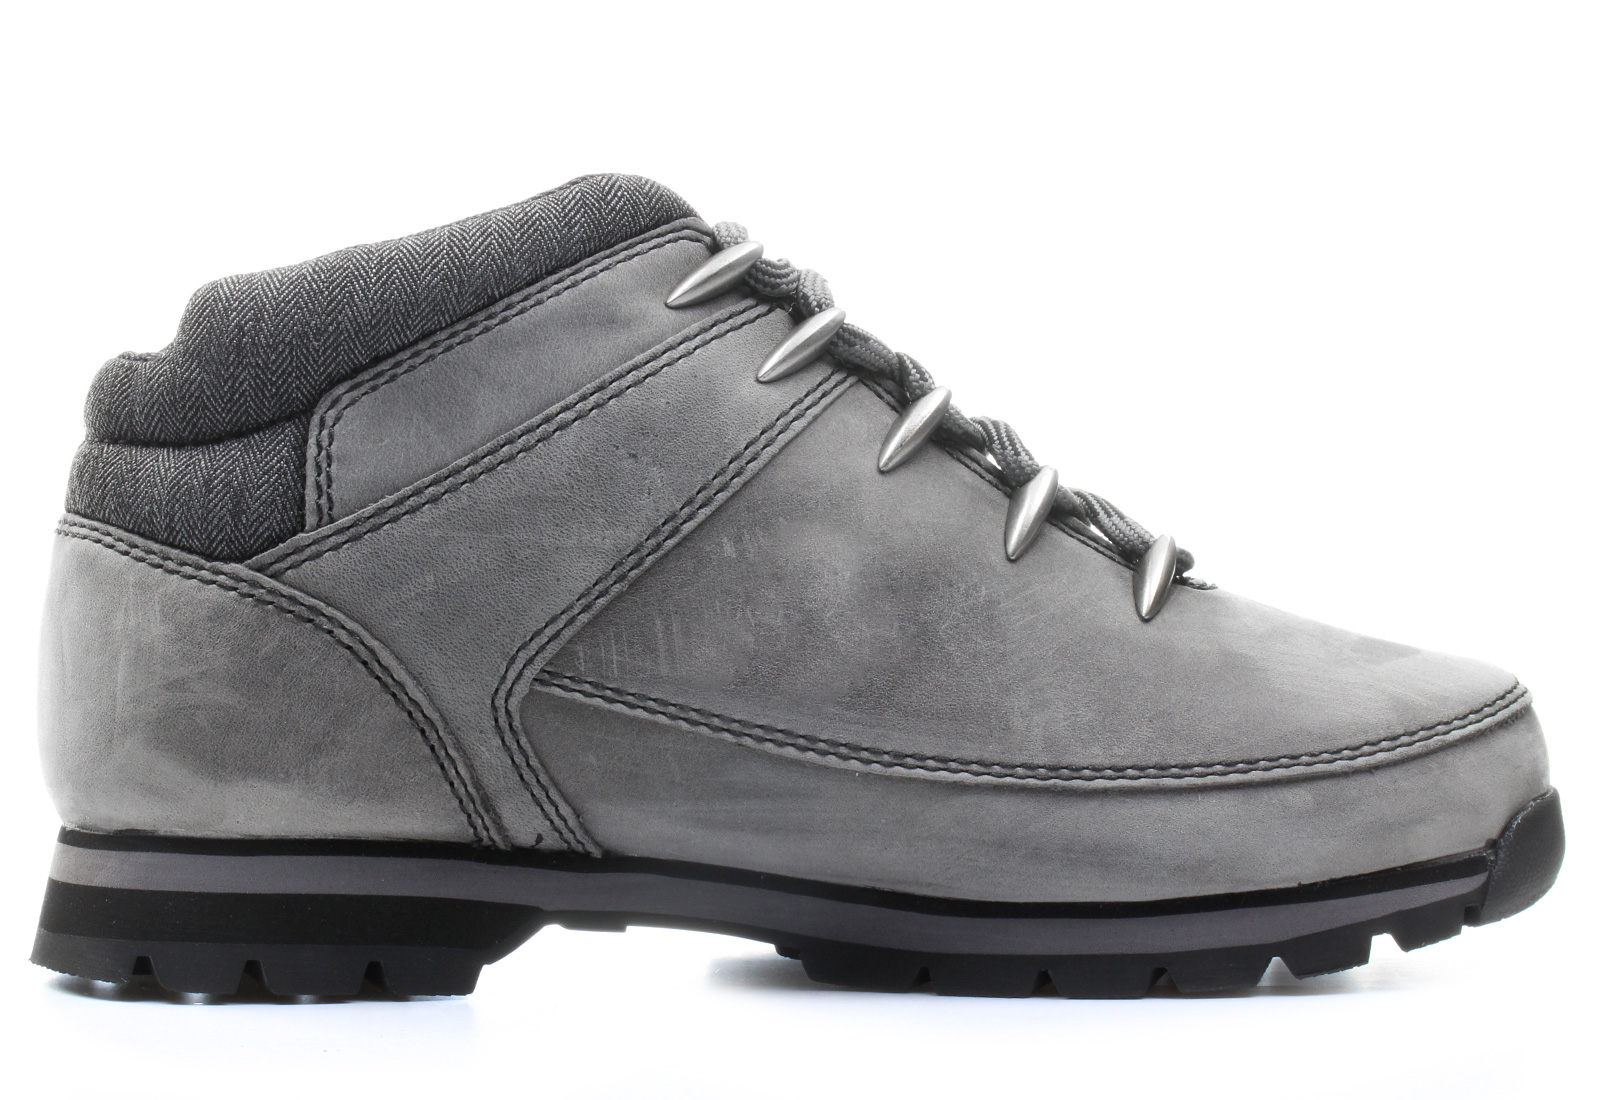 Timberland Boots Euro Sprint Hiker 6709a Gry Online